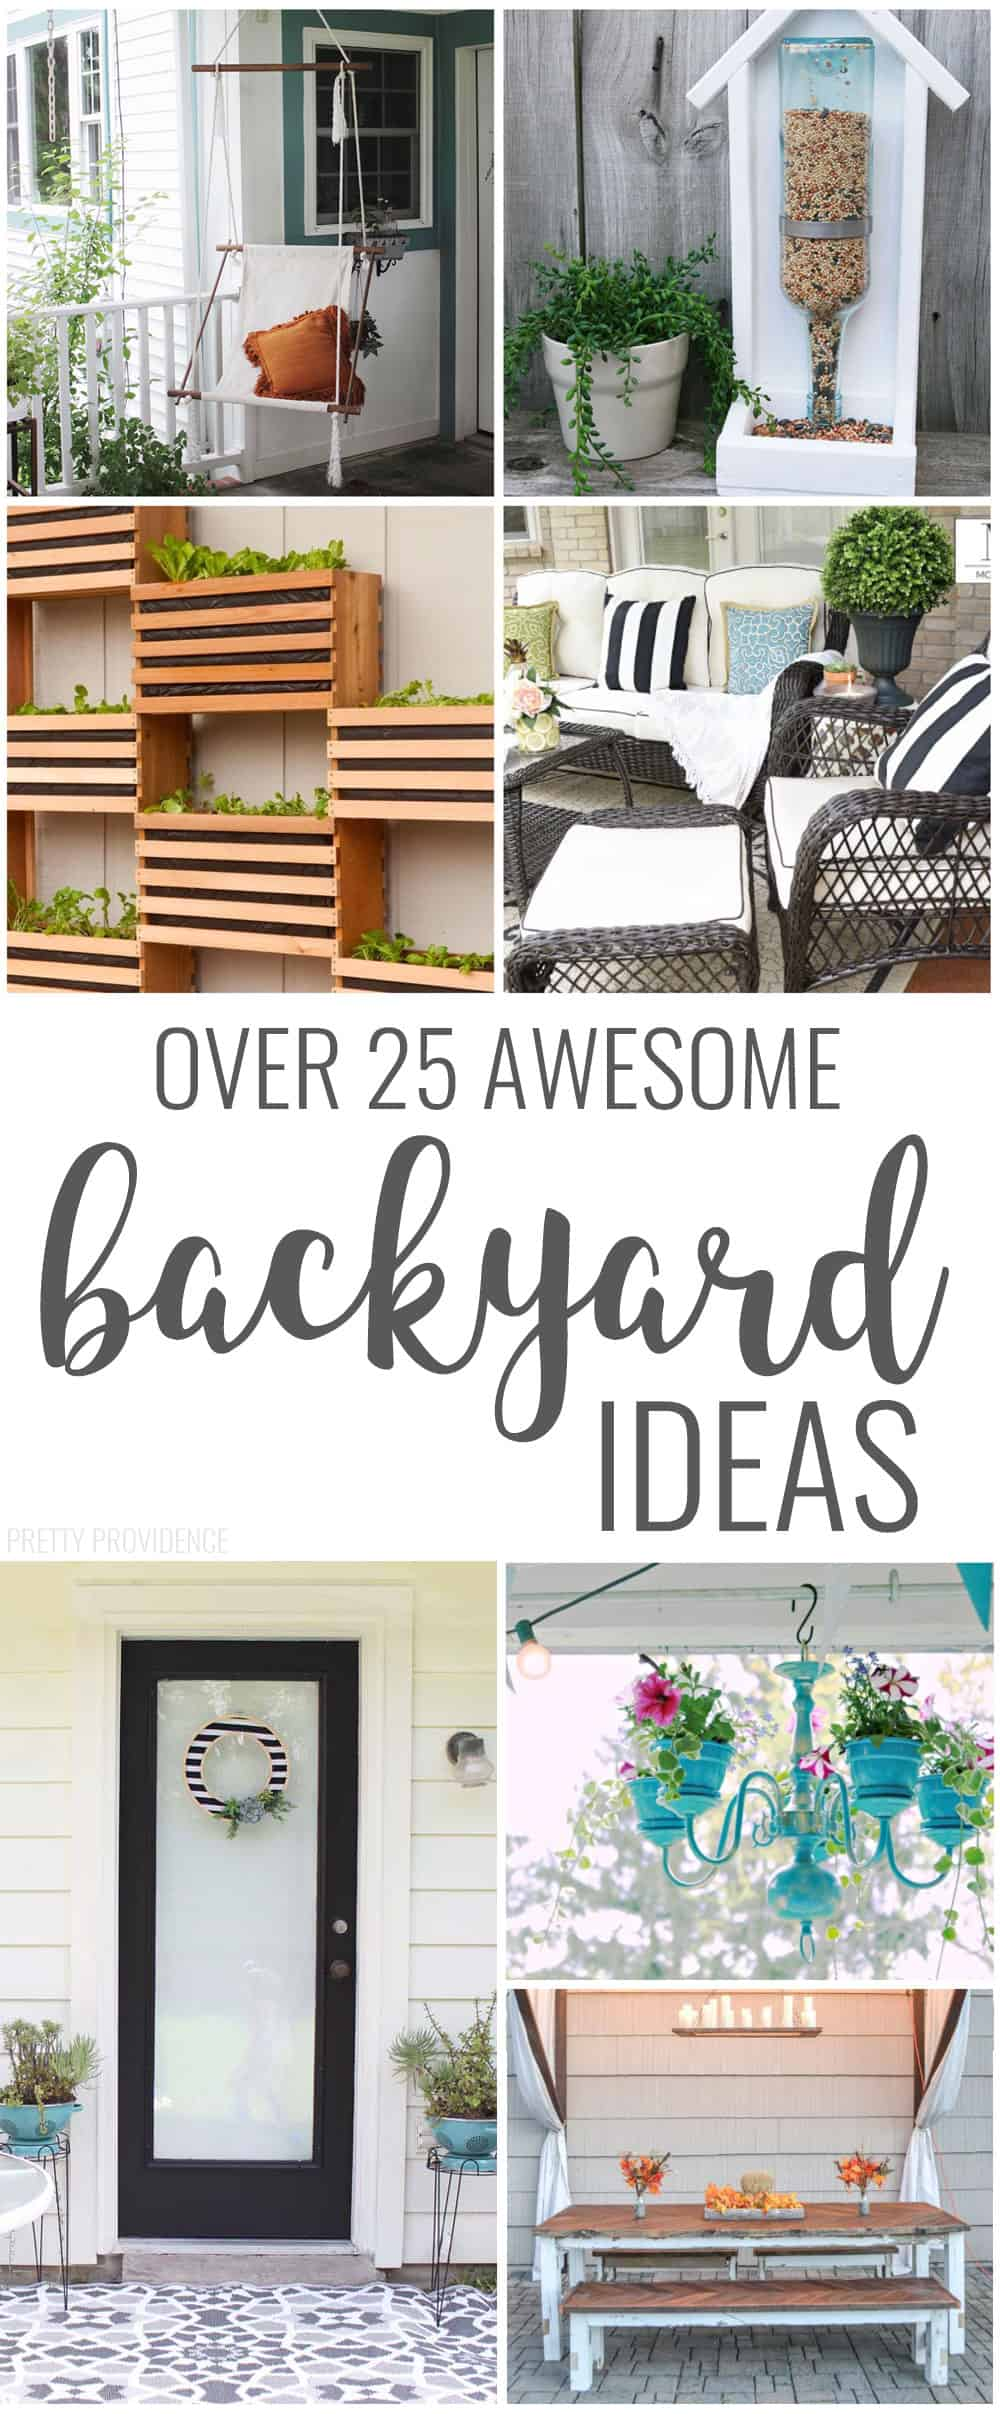 Backyard ideas for decor, seating, the patio! So many good ideas!